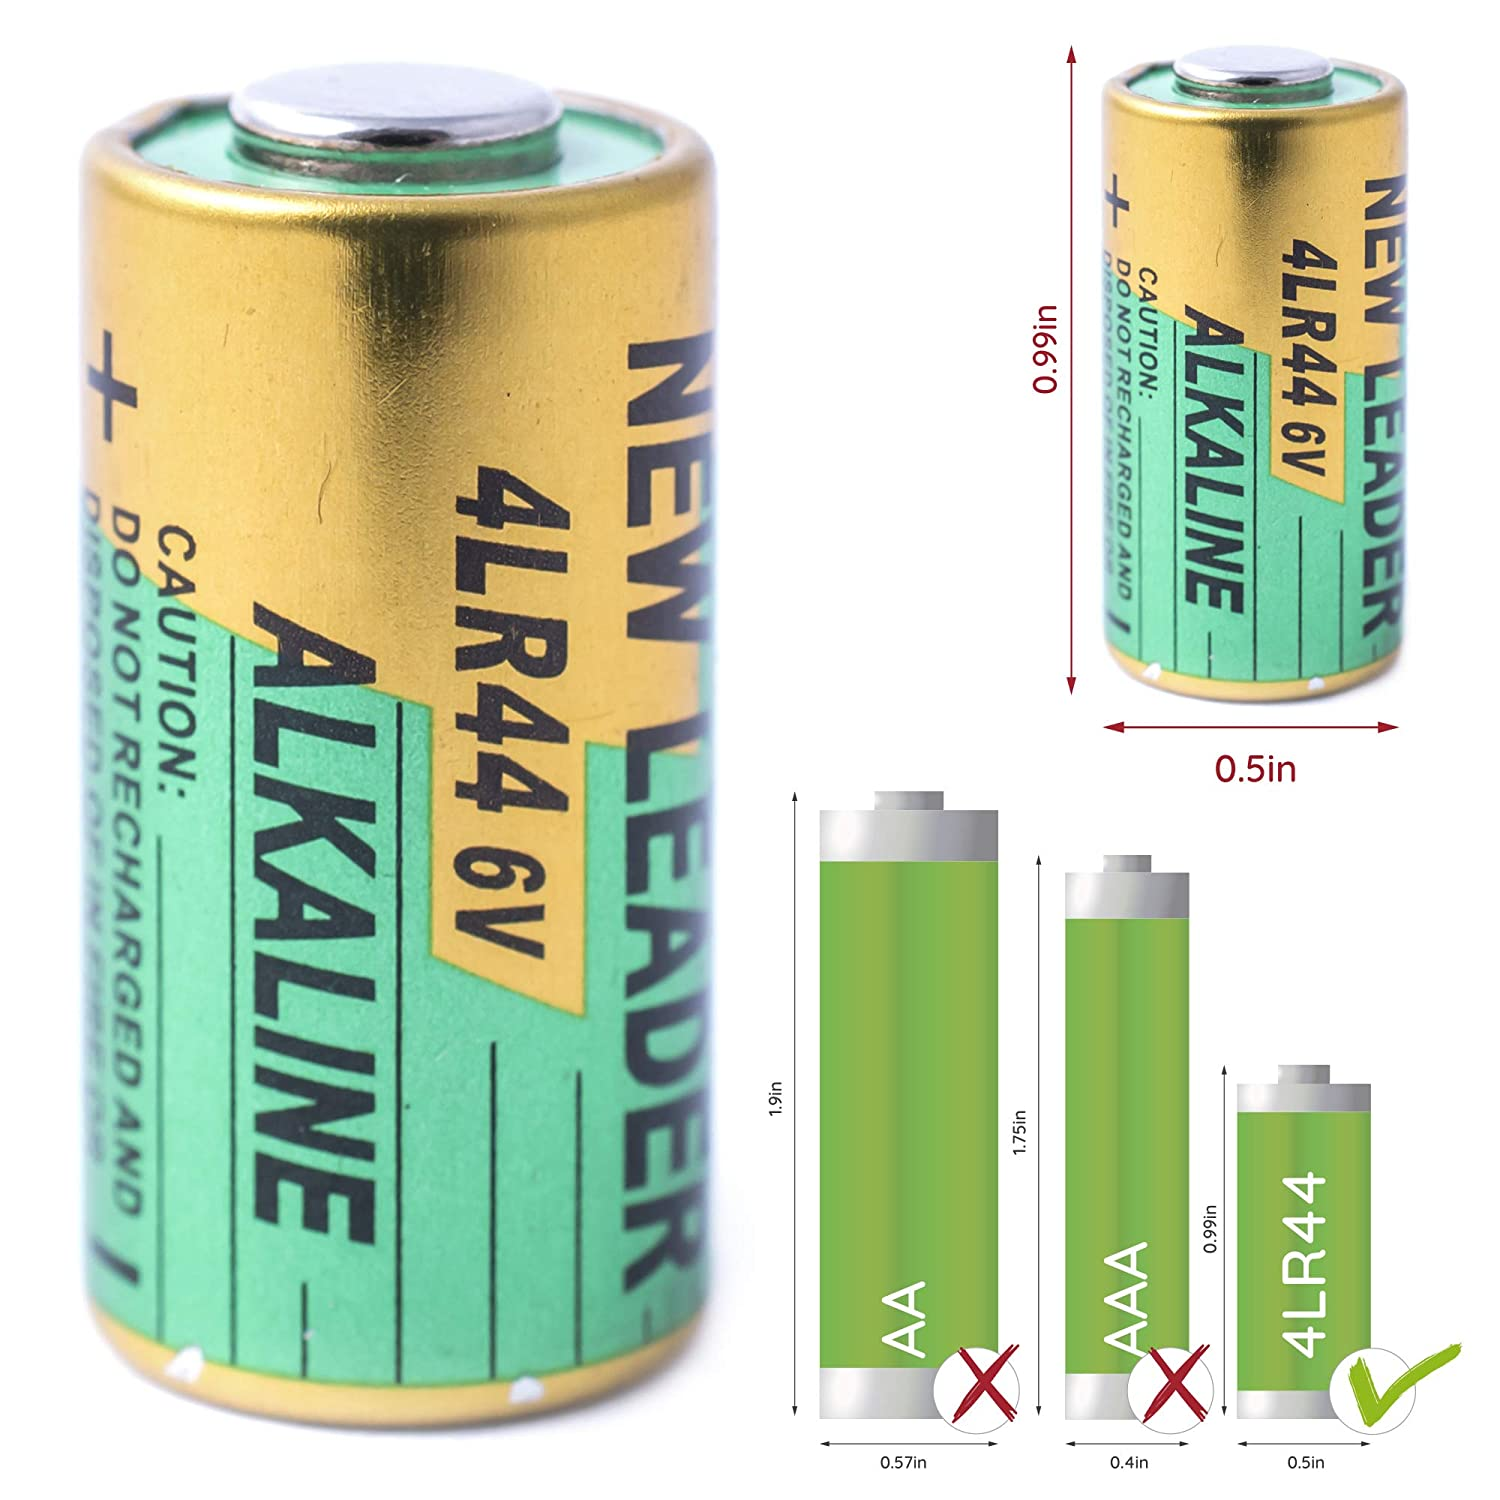 Bark Collar Batteries by GoodBoy 5-Pack 6V Alkaline Battery 4LR44 Also Known as PX28A, A544, K28A, V34PX